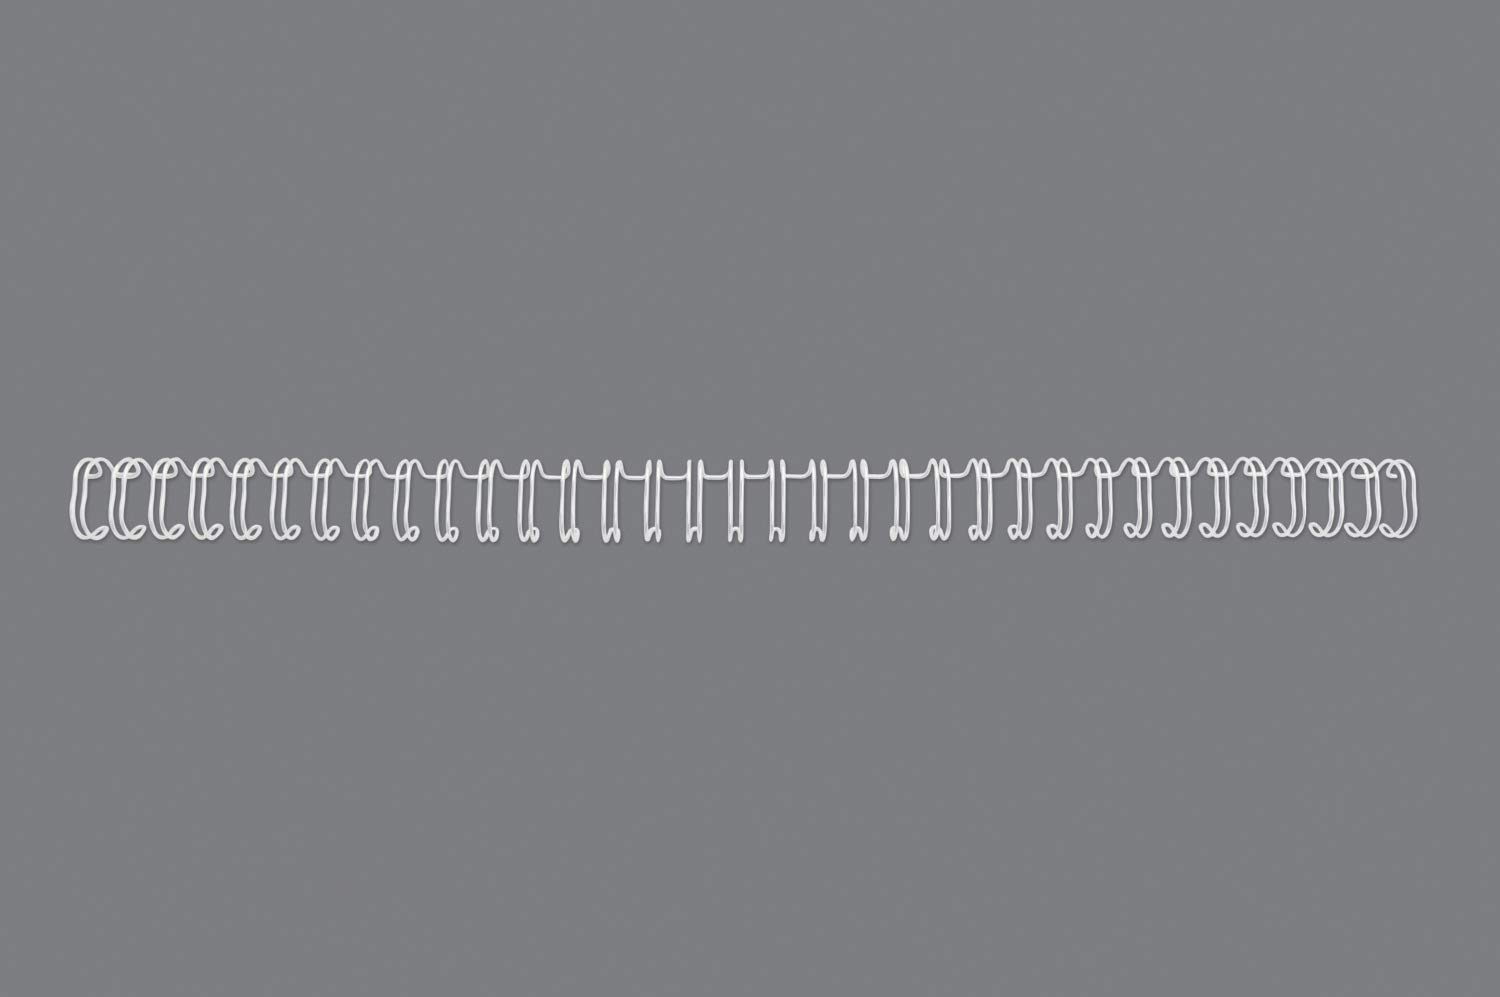 A4 GBC WireBind Binding Wires Pack of 100 14 mm RG810970 White 125 Sheet Capacity